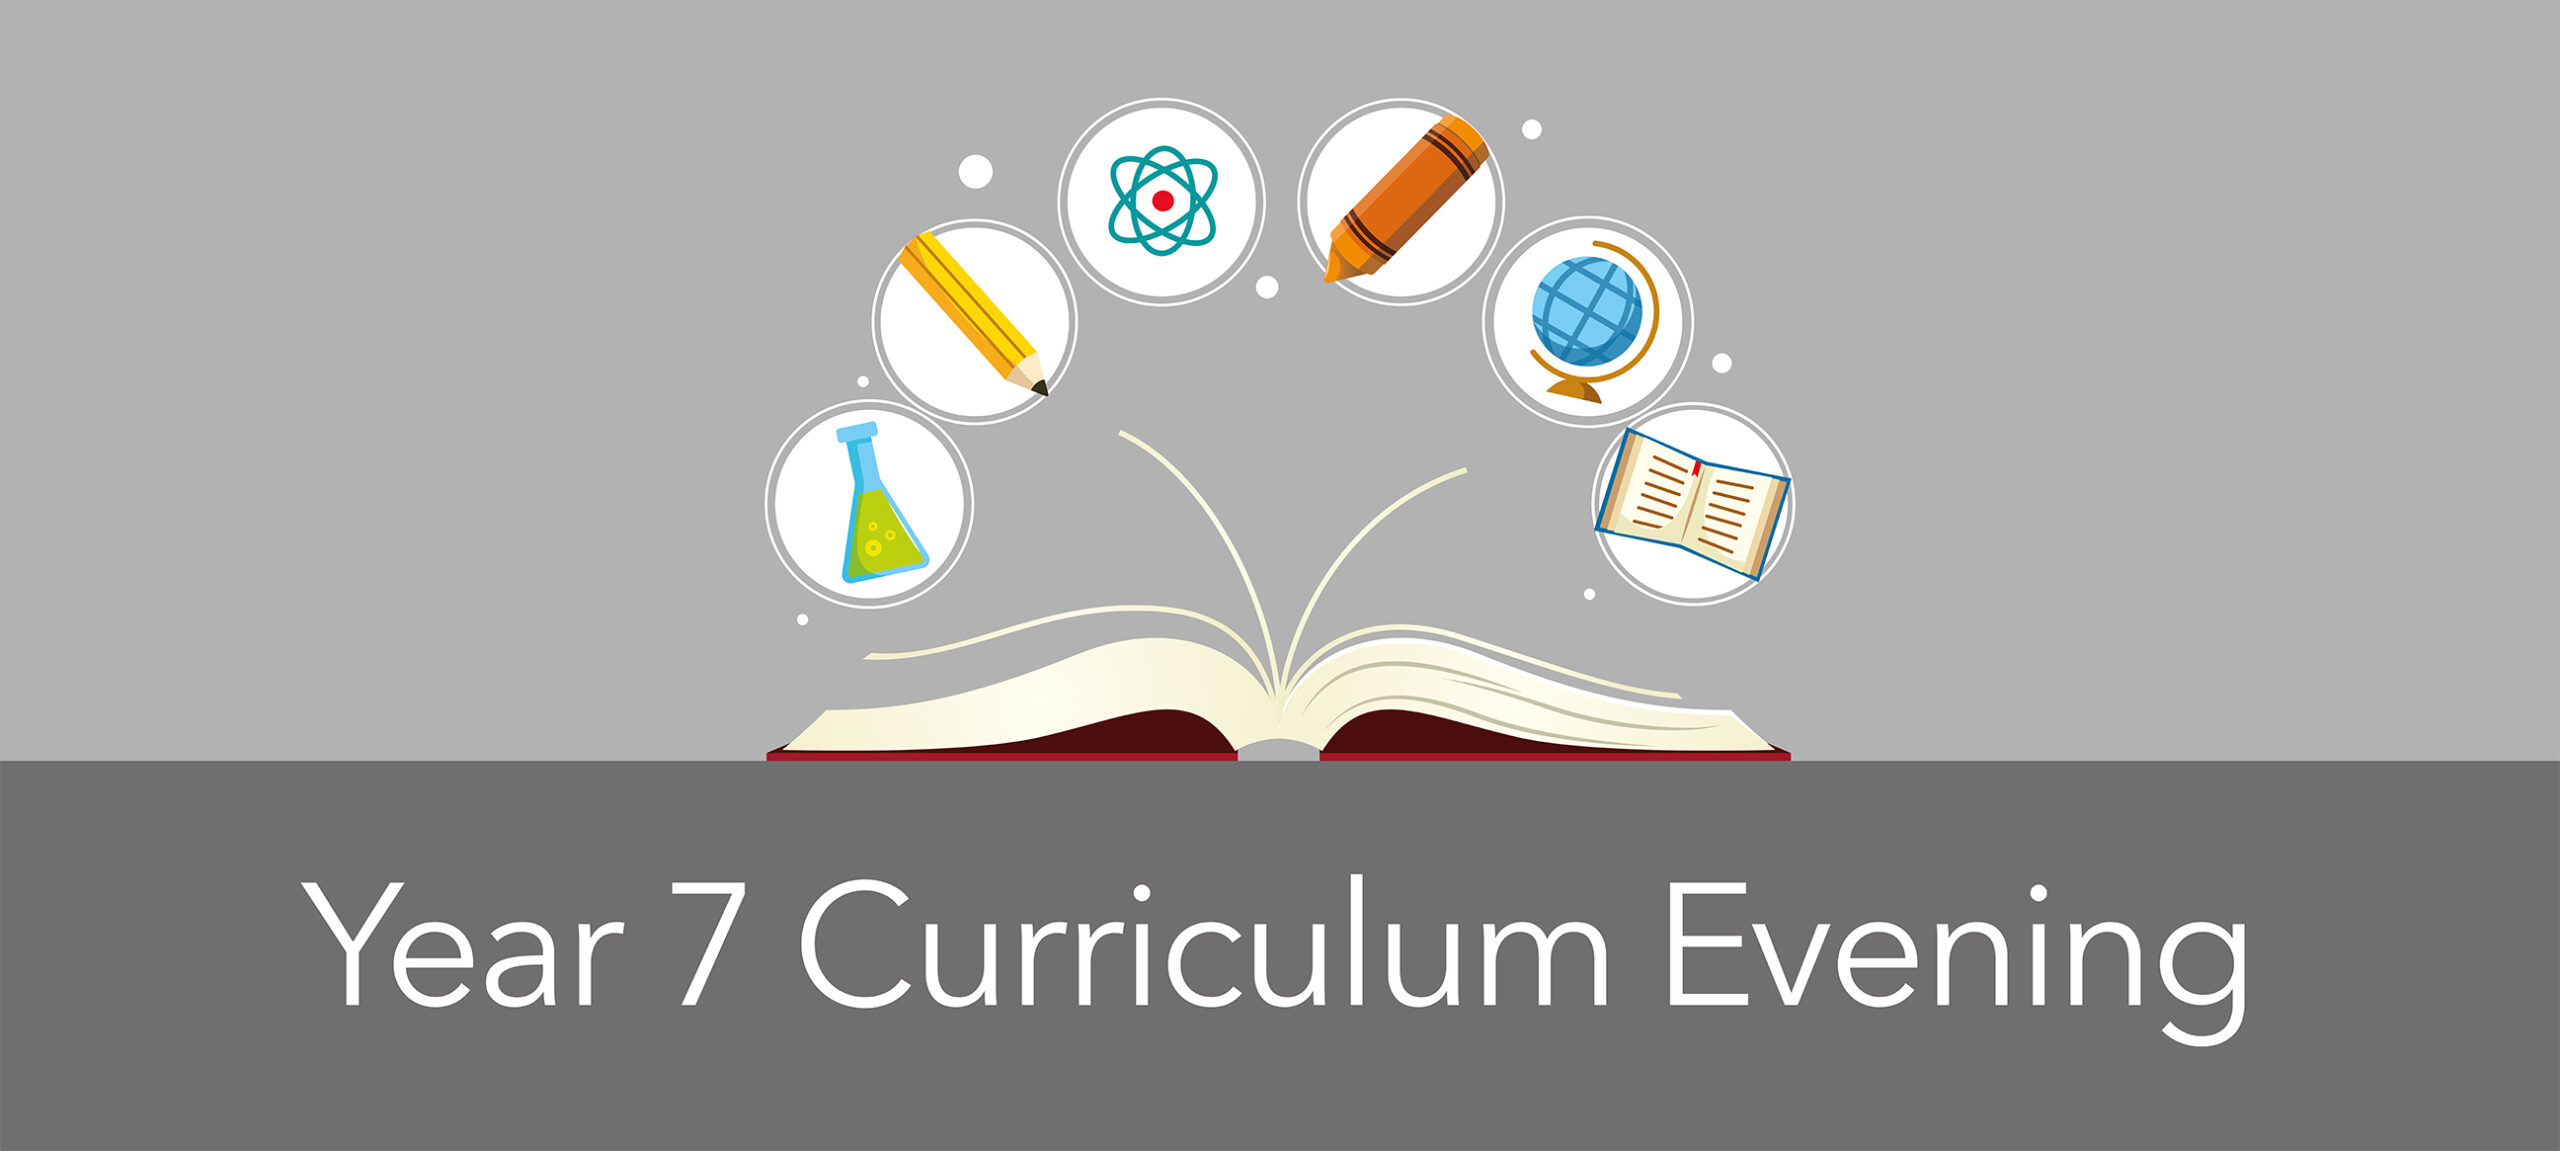 Year 7 Curriculum Evening 2020